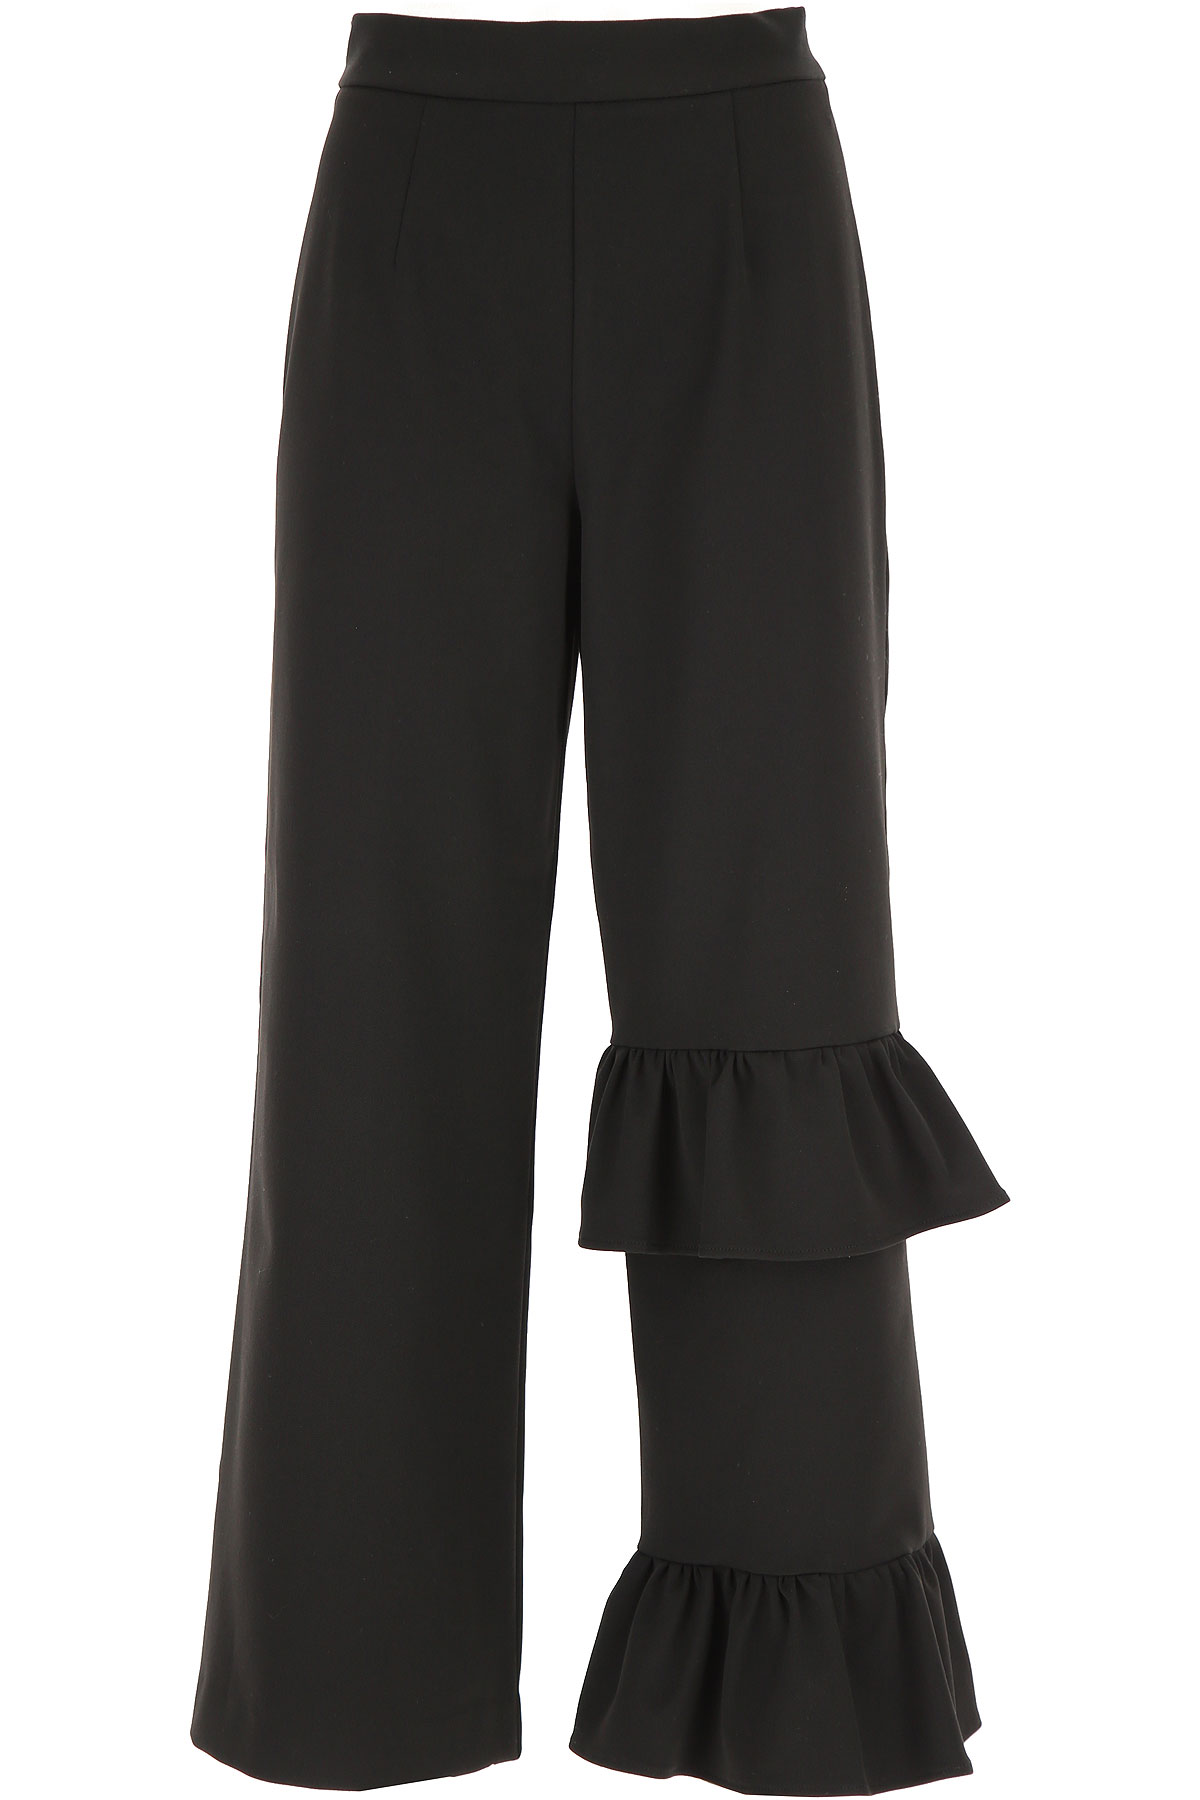 Vivetta Pants for Women On Sale, Black, polyester, 2019, 26 28